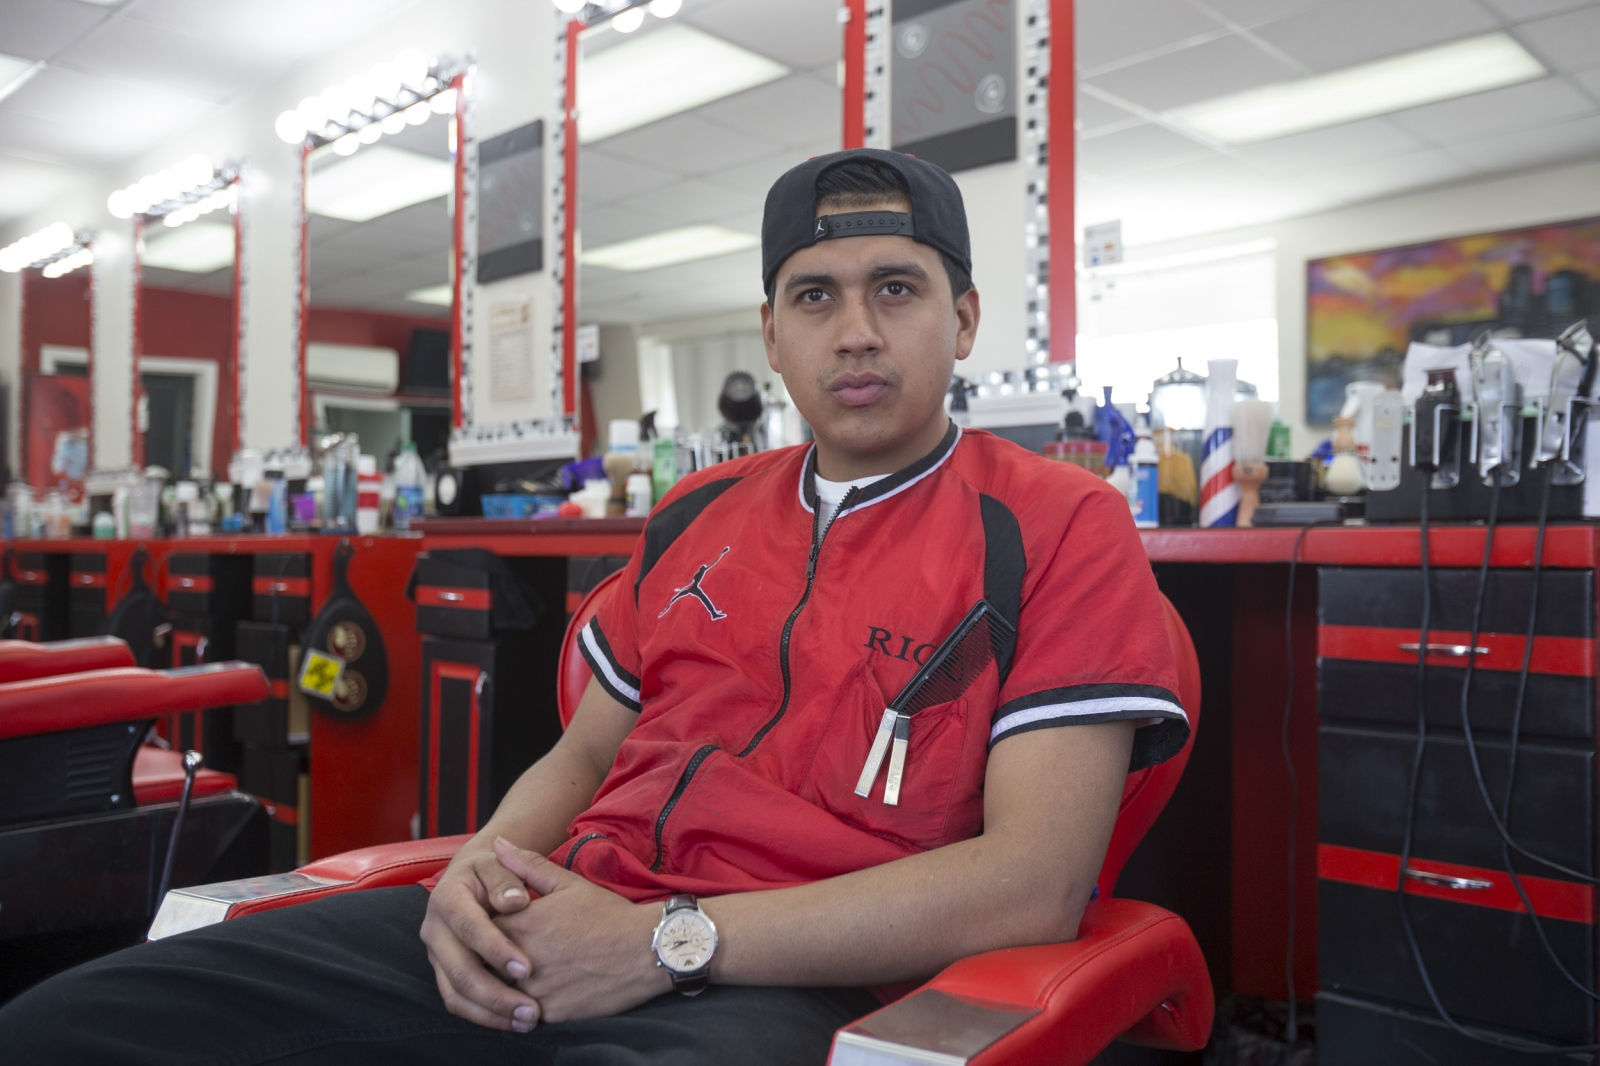 Southwest Styles barber, Ricardo Alvarez of Southwest Detroit, poses for a portrait in his chair at the shop in Detroit, Mich.